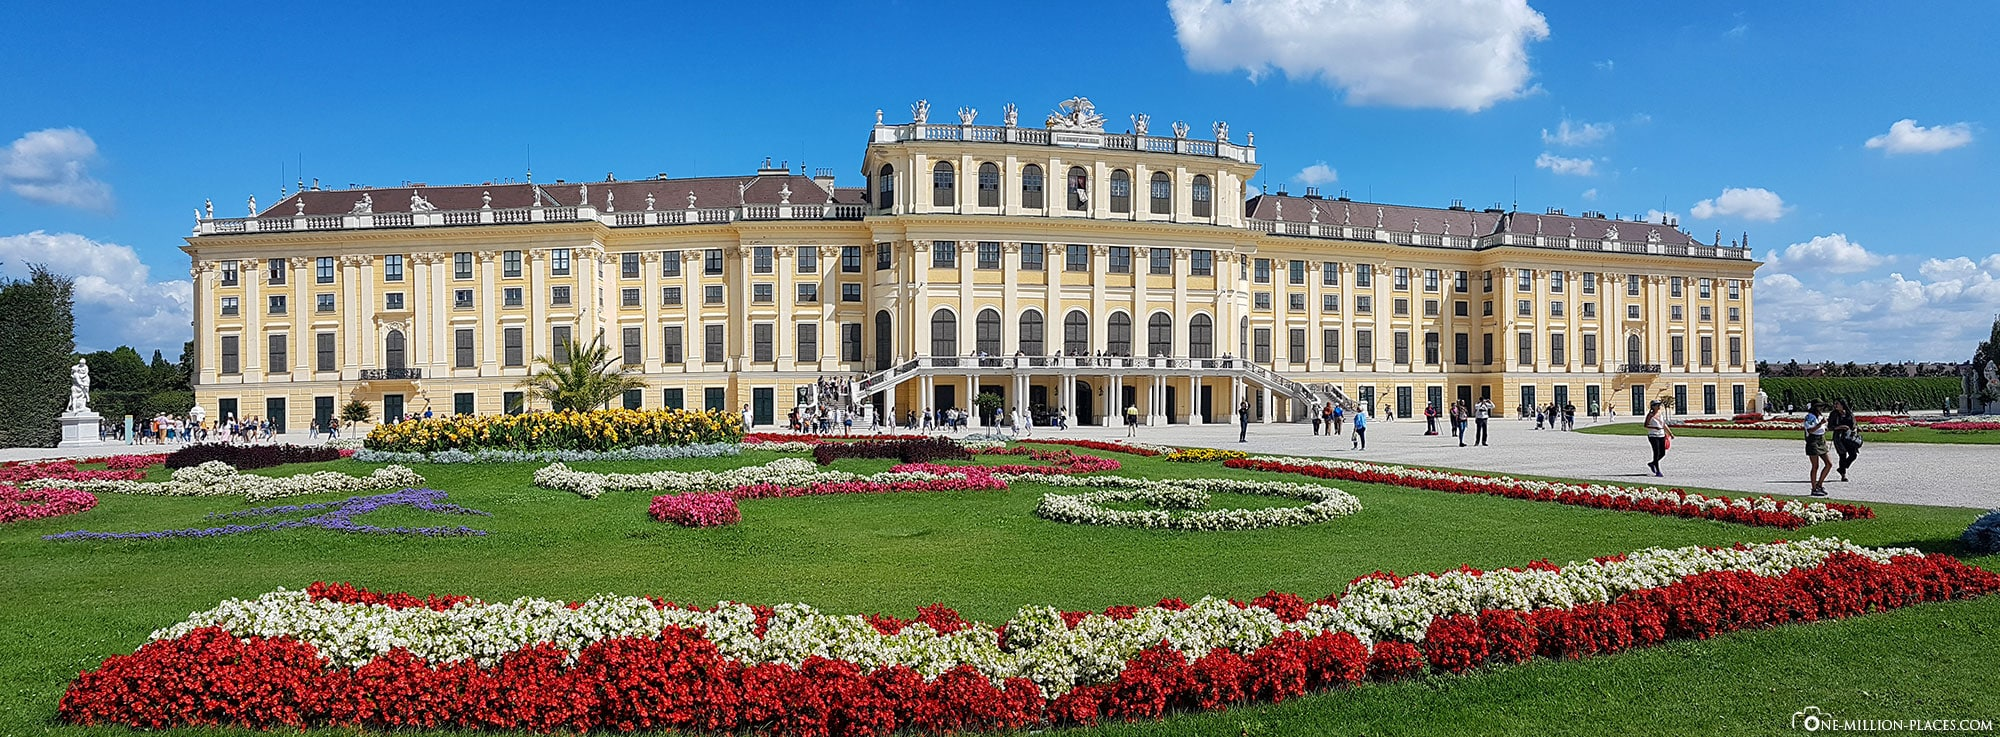 Panorama, Schönbrunn Palace, Vienna, Sights, Things to do, Attractions, Sightseeing, Travel Tips